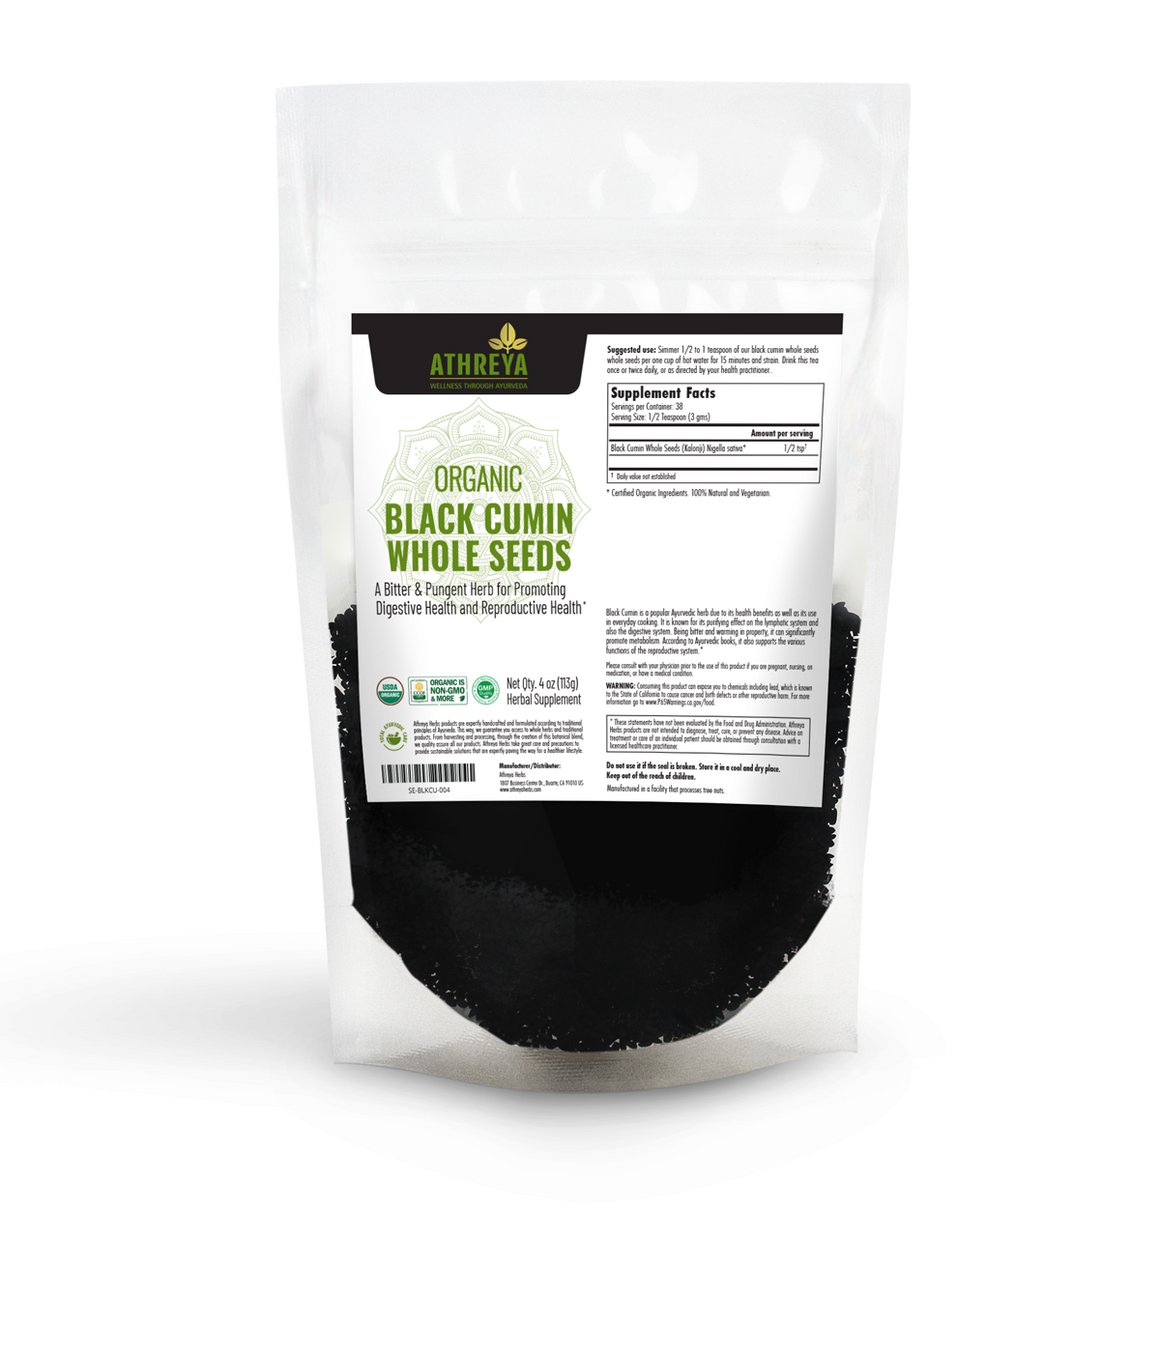 Organic Black Cumin Whole Seeds